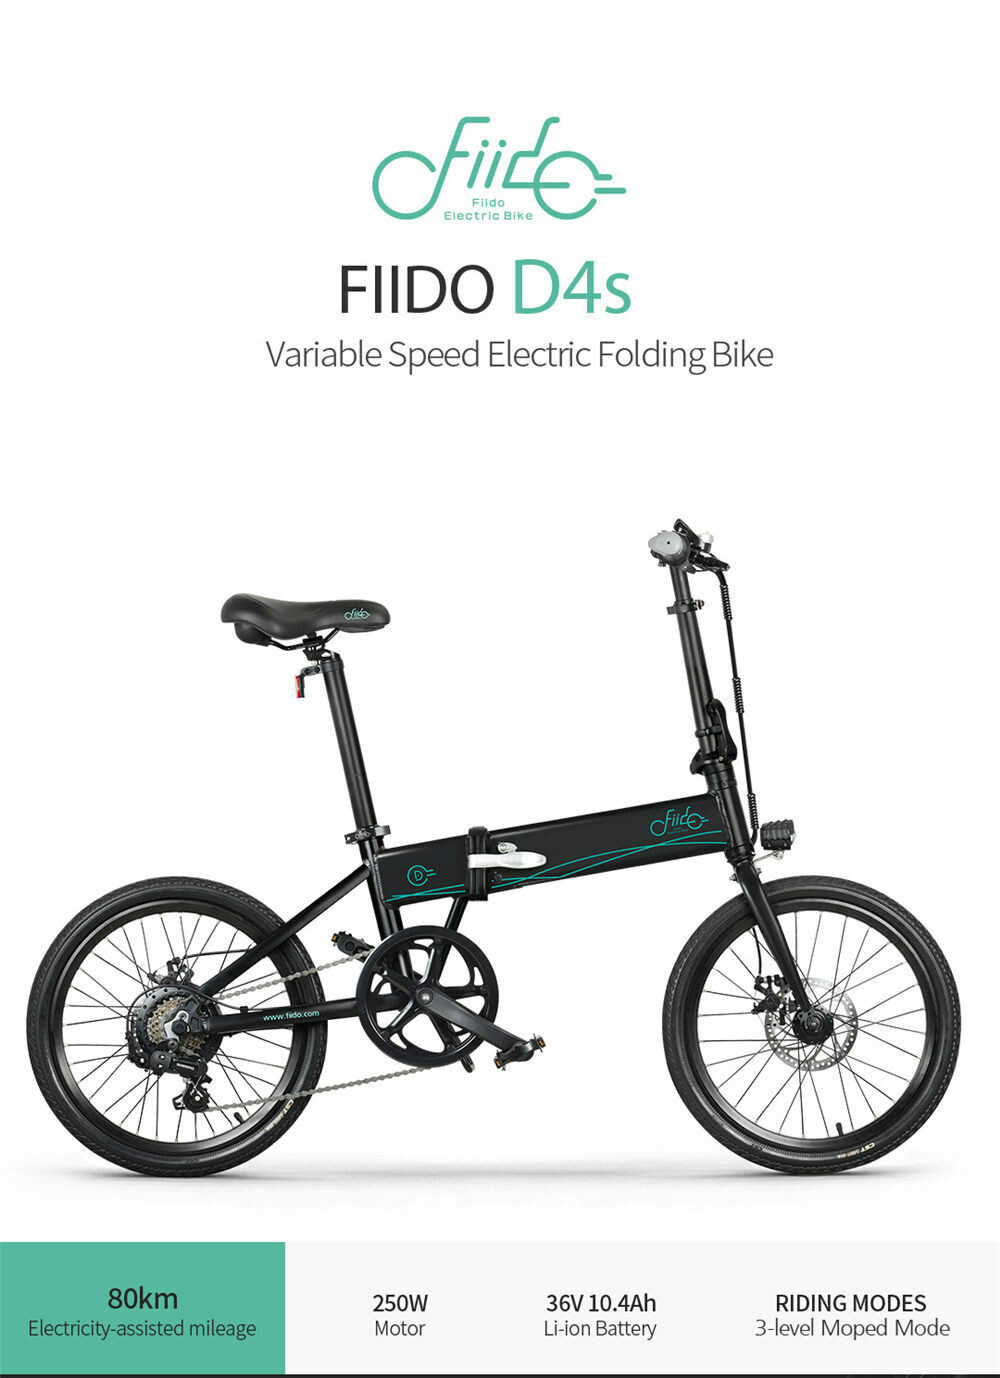 FIIDO D4S Variable Speed